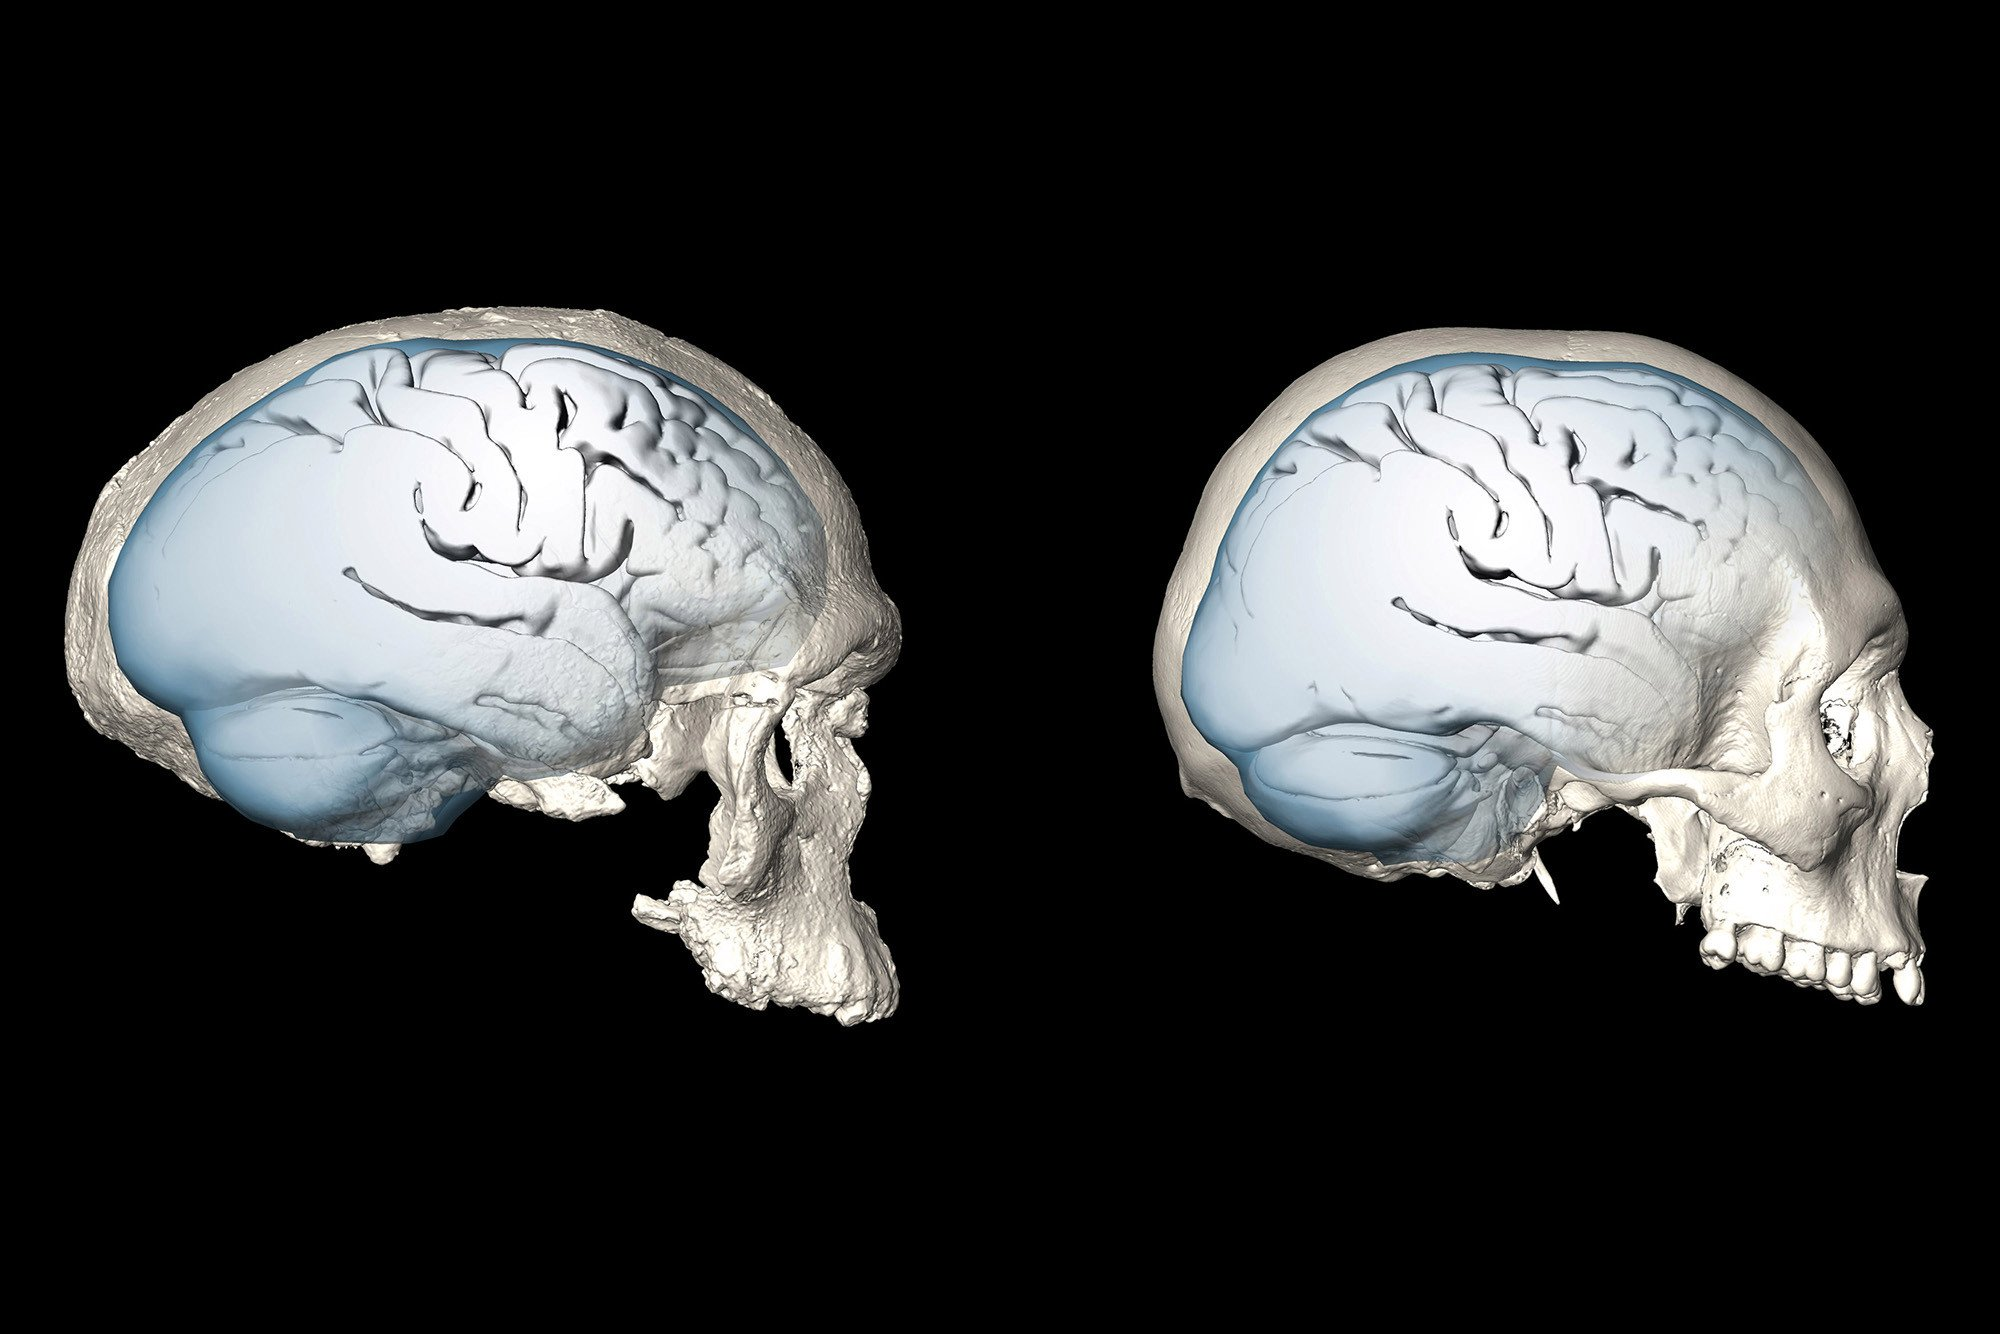 Shape of the human brain evolved over time